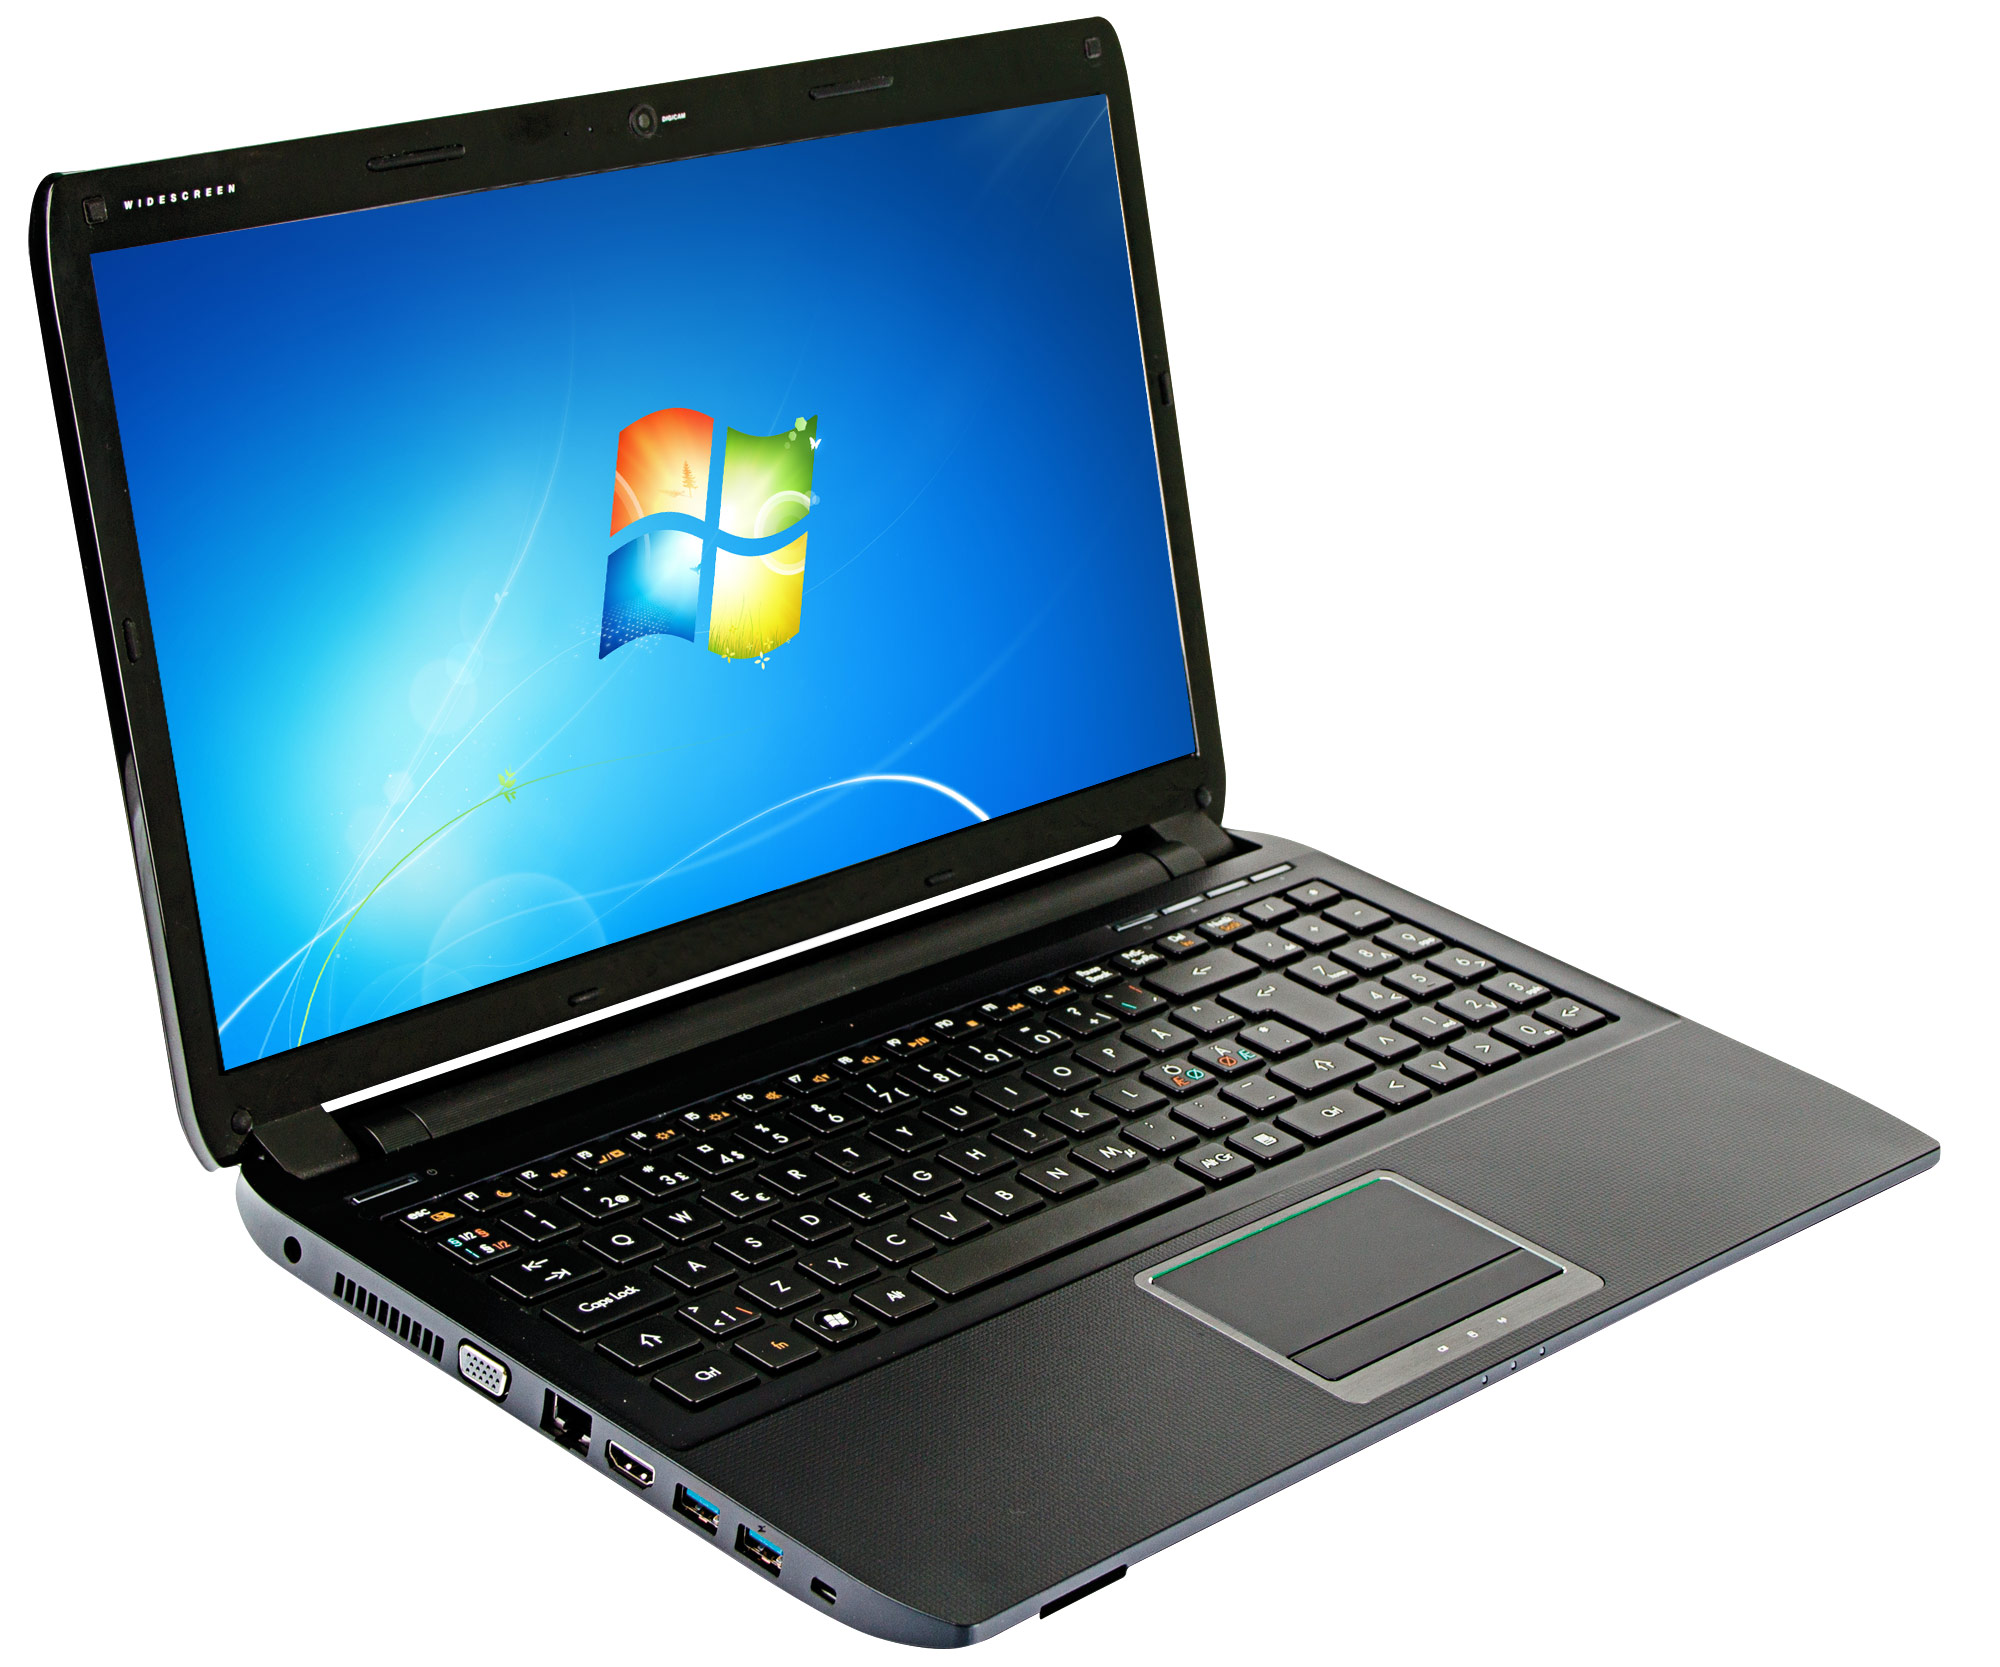 "Notebook Abook 520 15,4"" Intel B950/2GB/120GB/Win7"